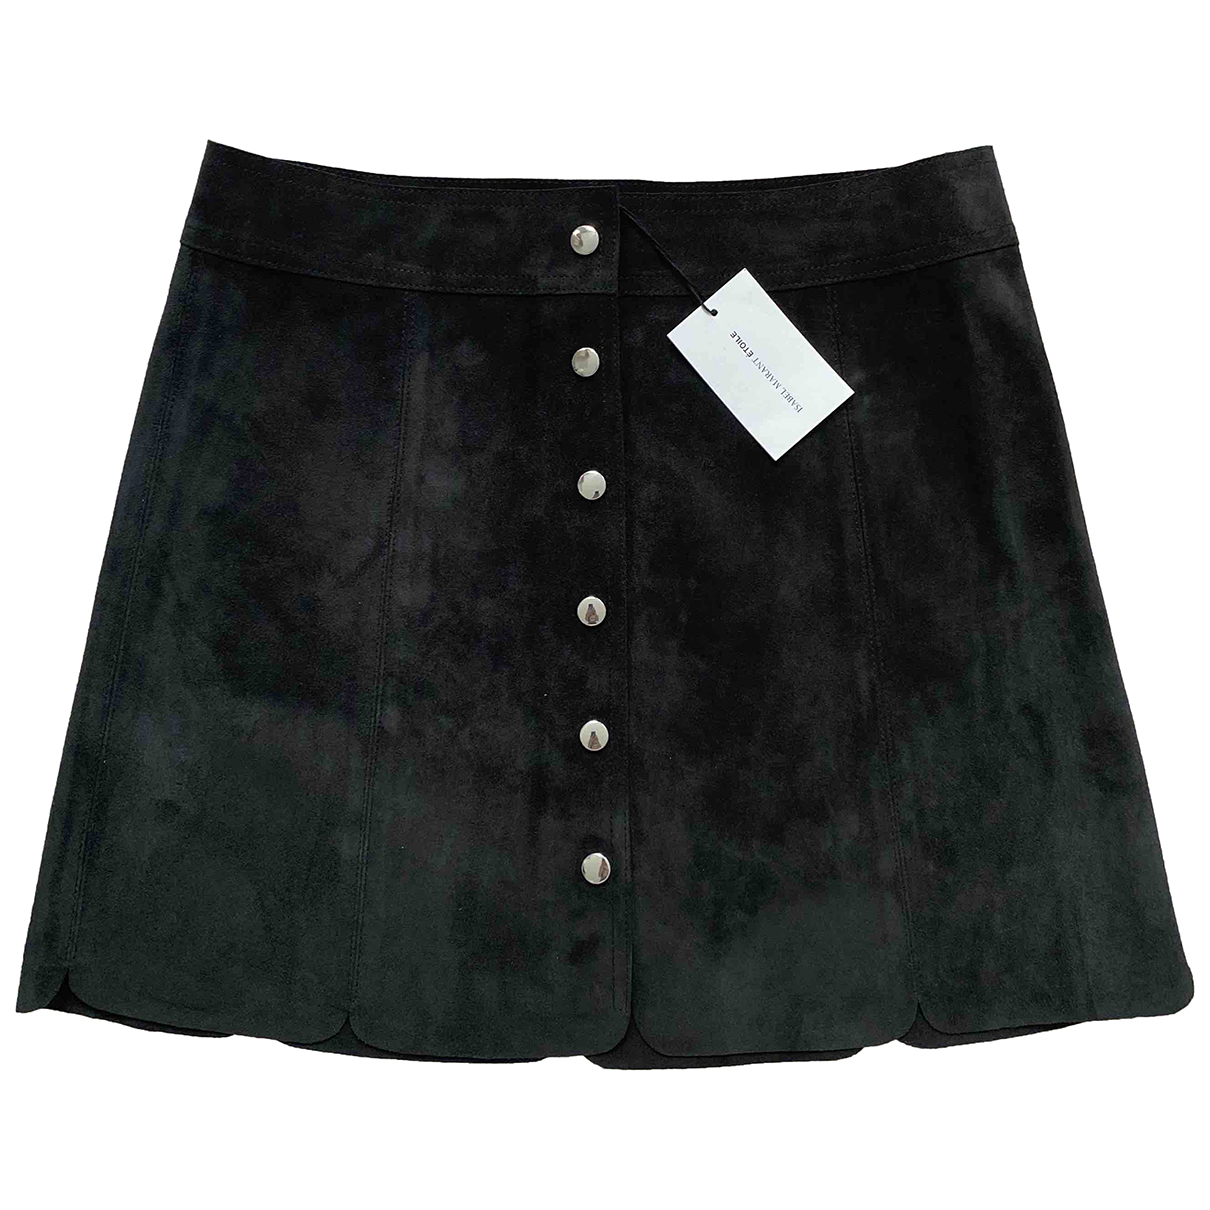 Isabel Marant Etoile \N Black Suede skirt for Women 38 FR